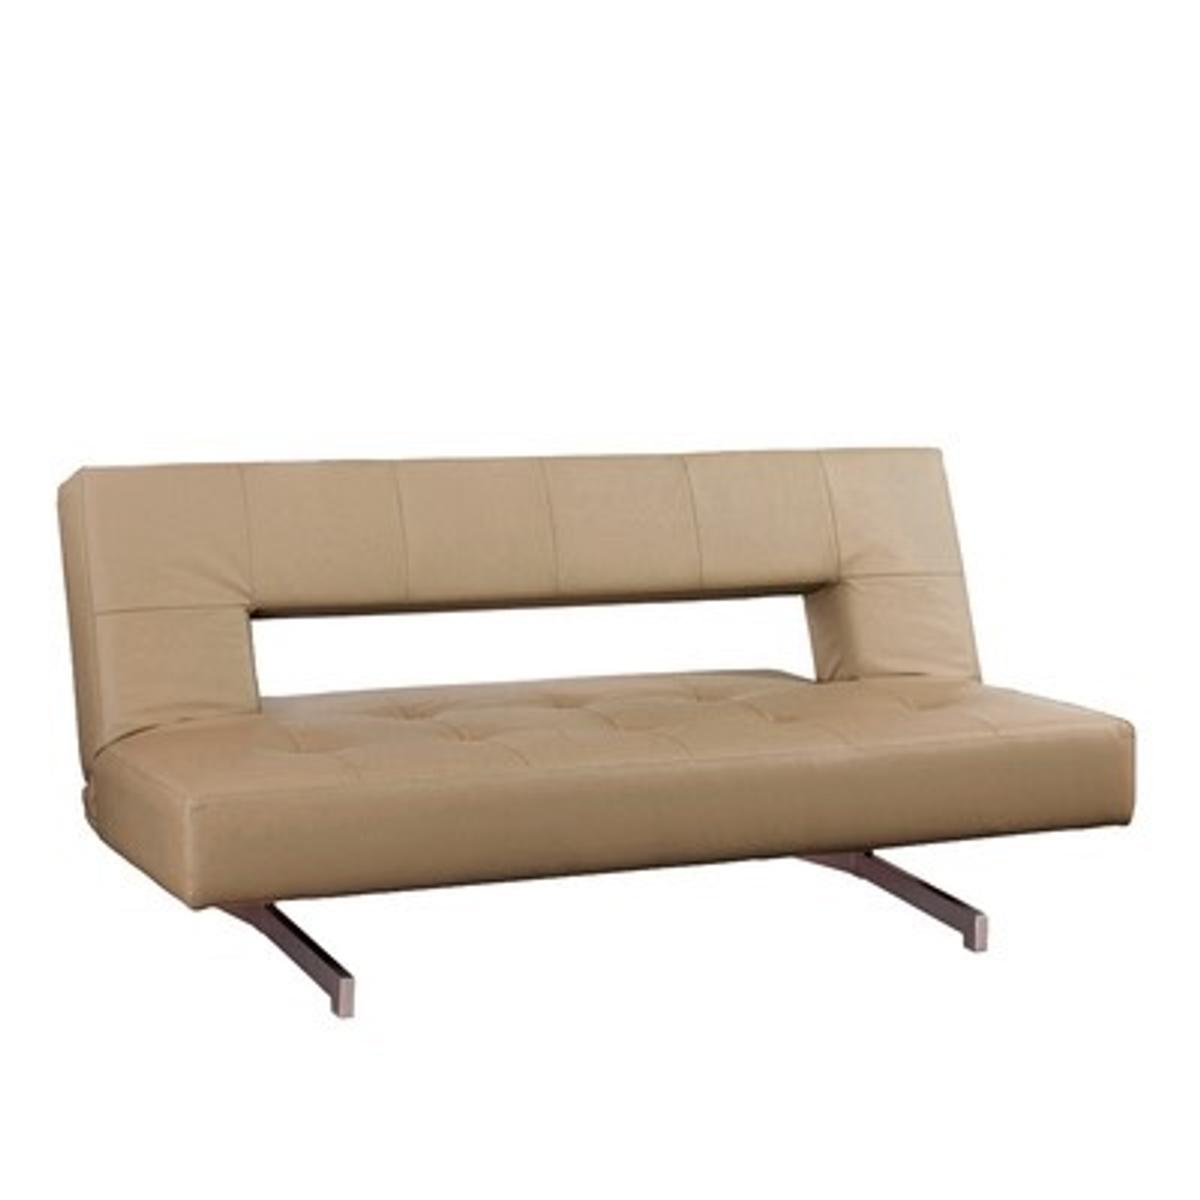 W10 Chelsea Leather Sofa Bed 00 From £150 Faux For DwellIn 5jc4ALq3R